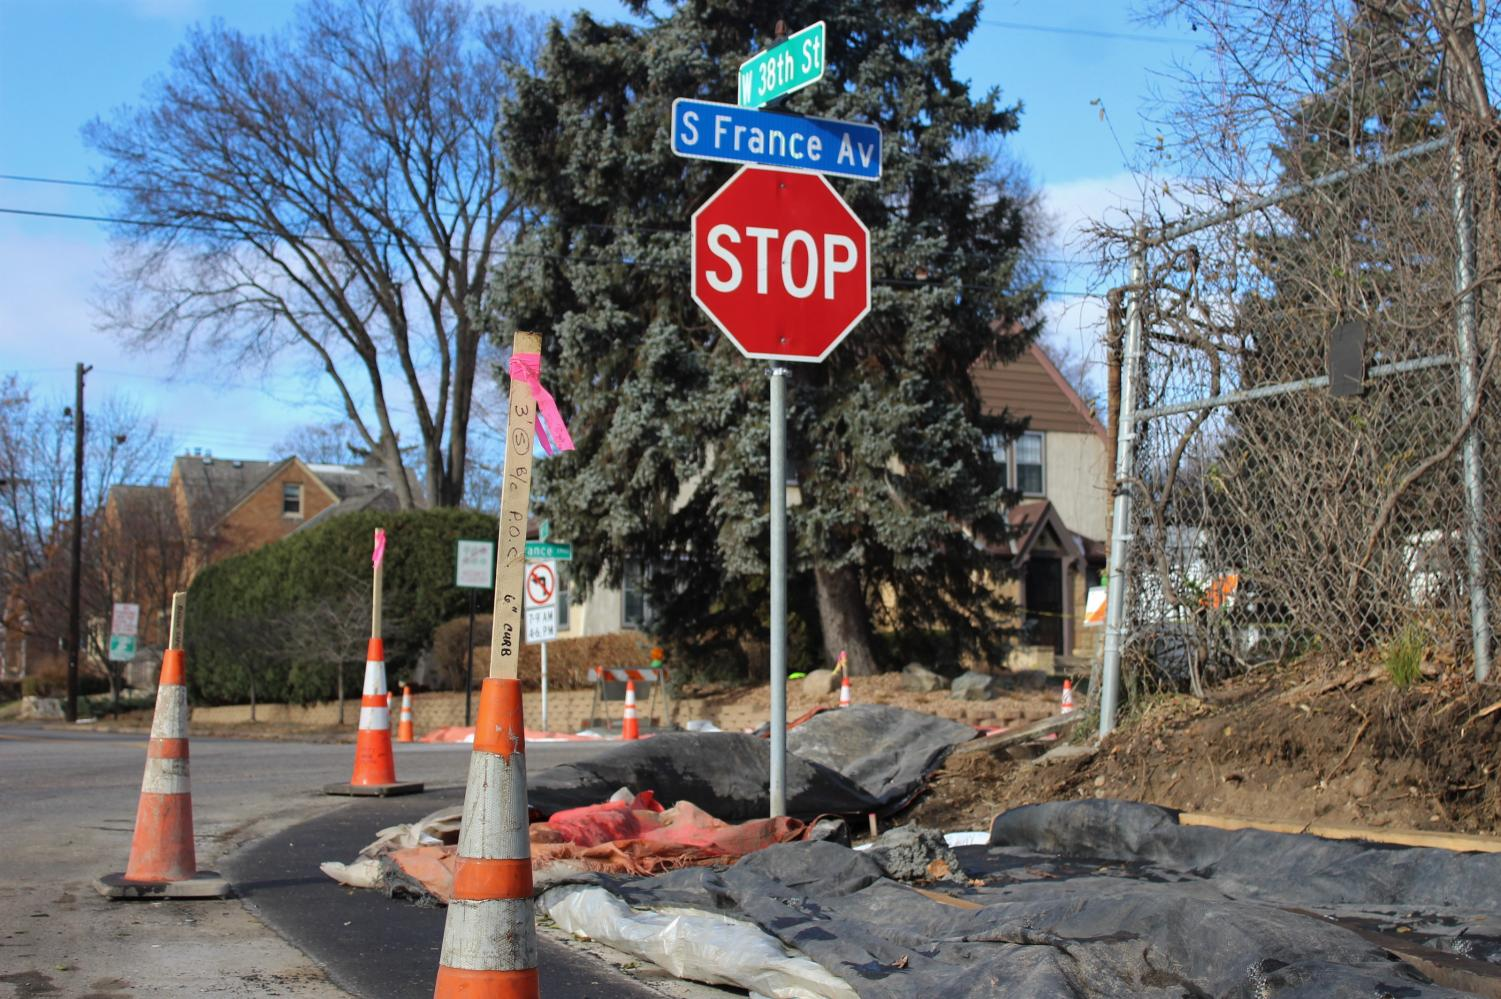 Construction on S France Ave causes temporary inconvenience for drivers.  The construction will make the intersection safe by constructing a crosswalk.